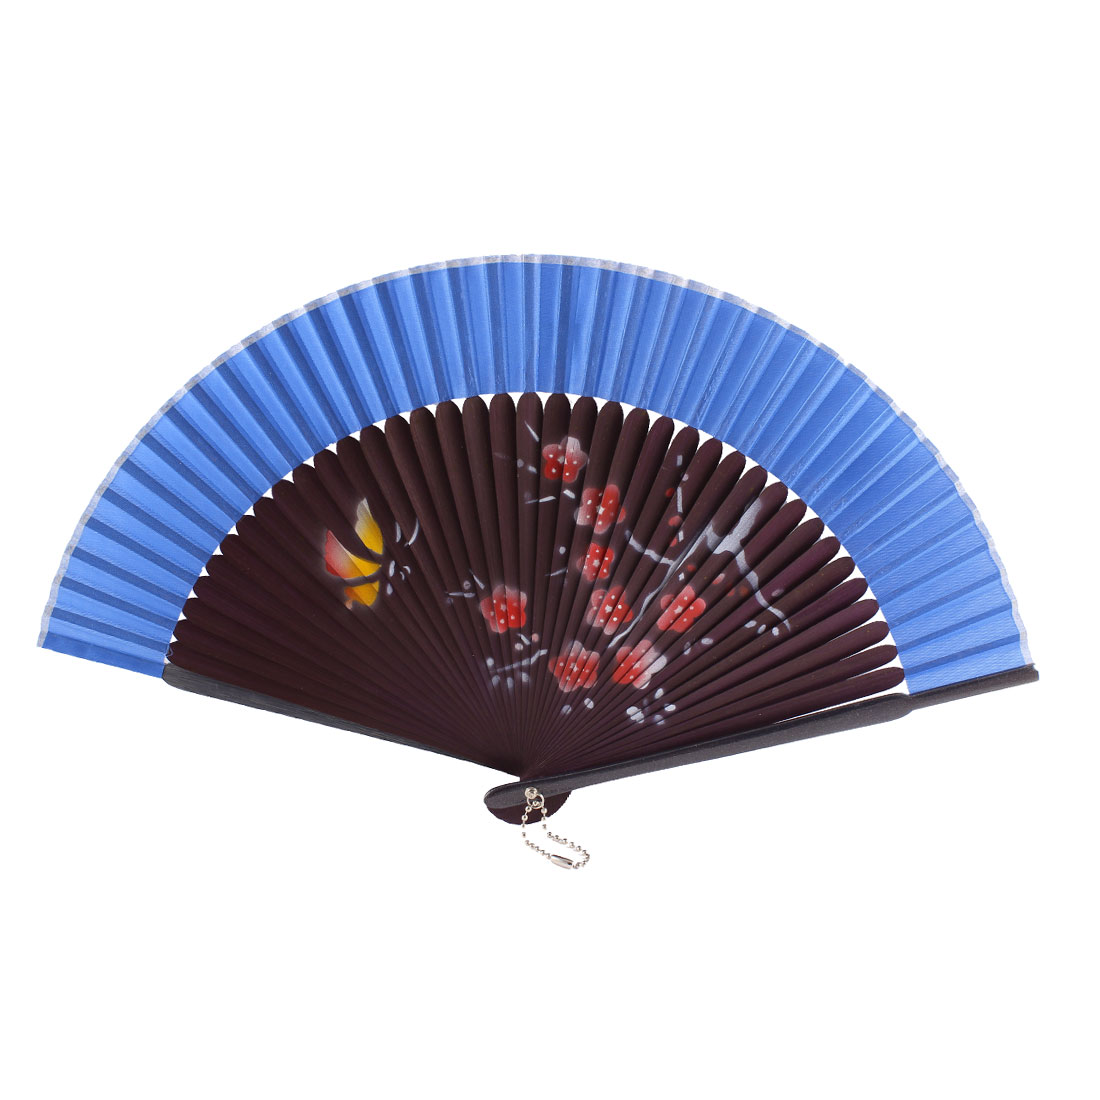 Dancer Summer Wedding Party Plum Blossom Printed Nylon Bamboo Rib Folding Hand Fan Gift Ornament Blue Purple